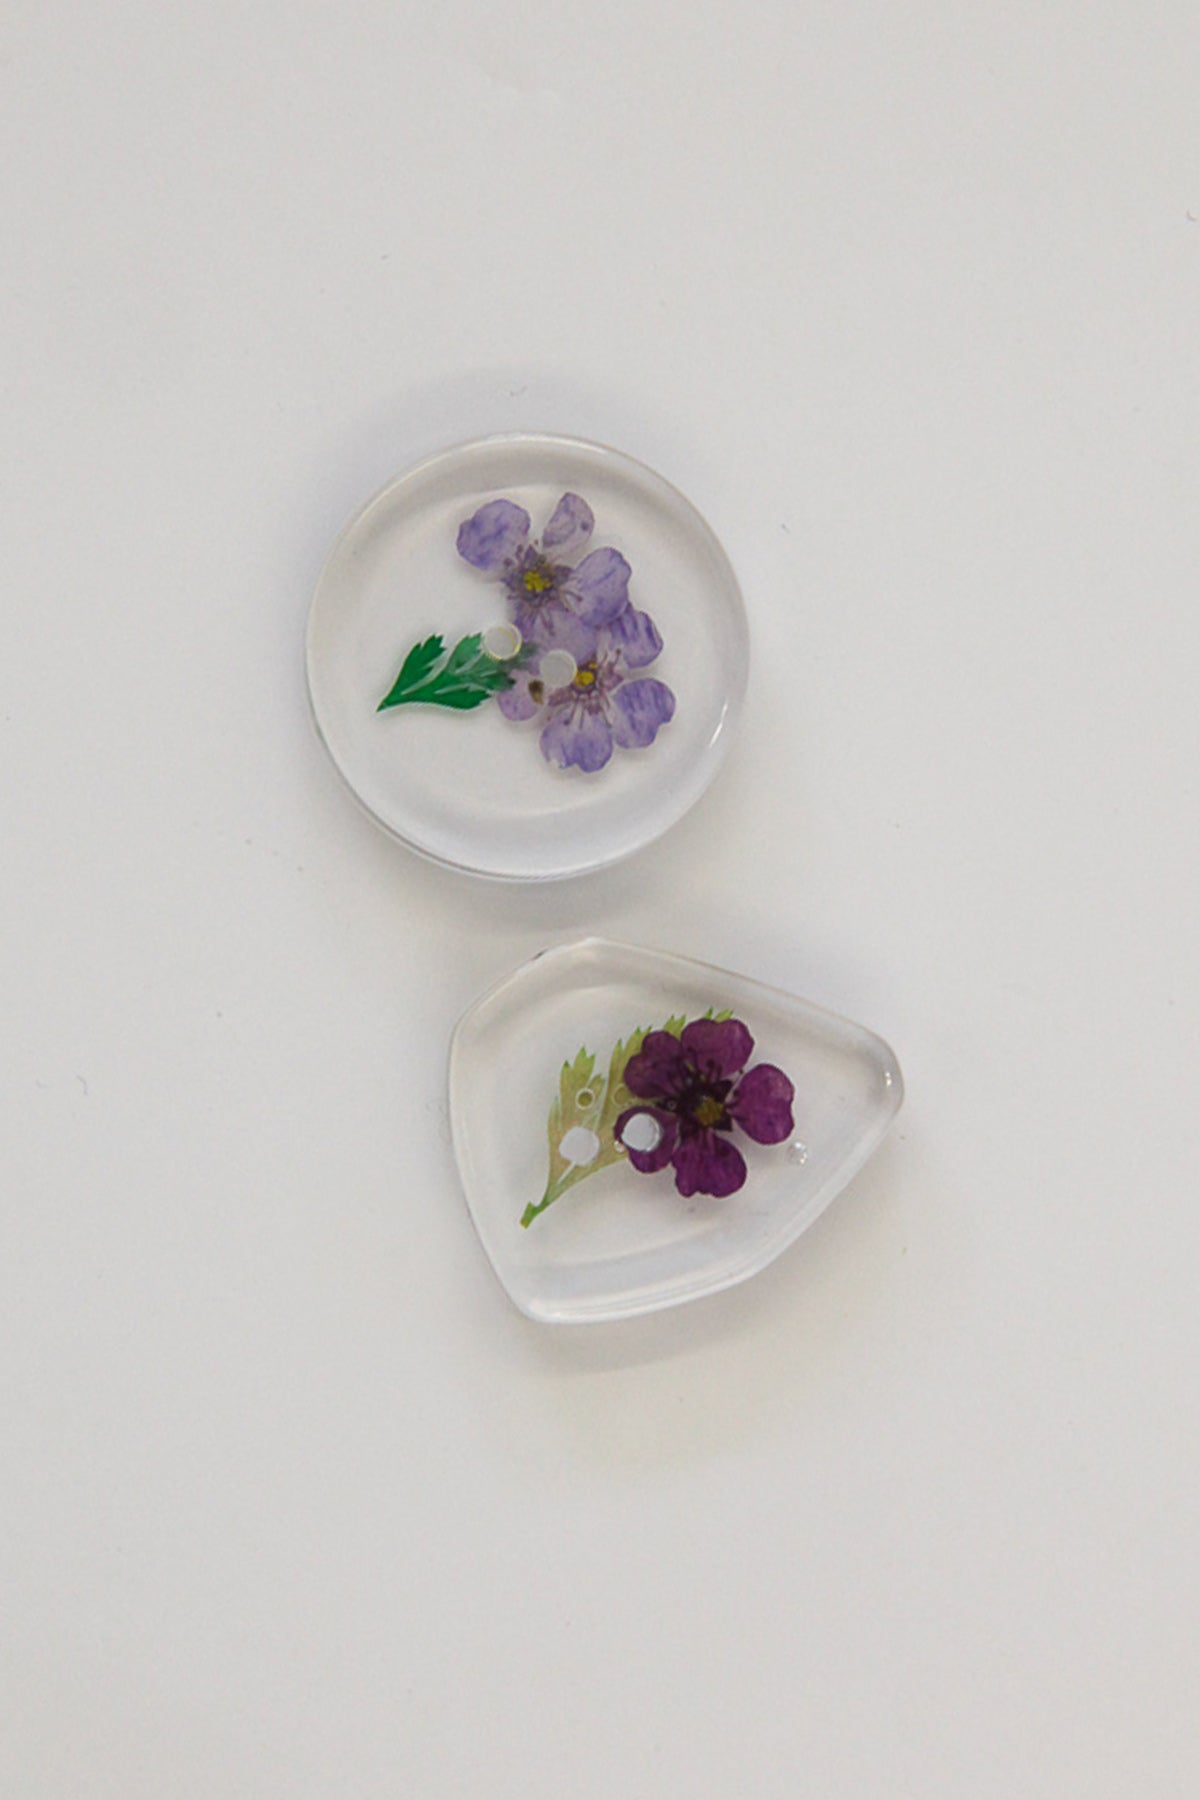 Flower Pressed Lucite Buttons - Mixed